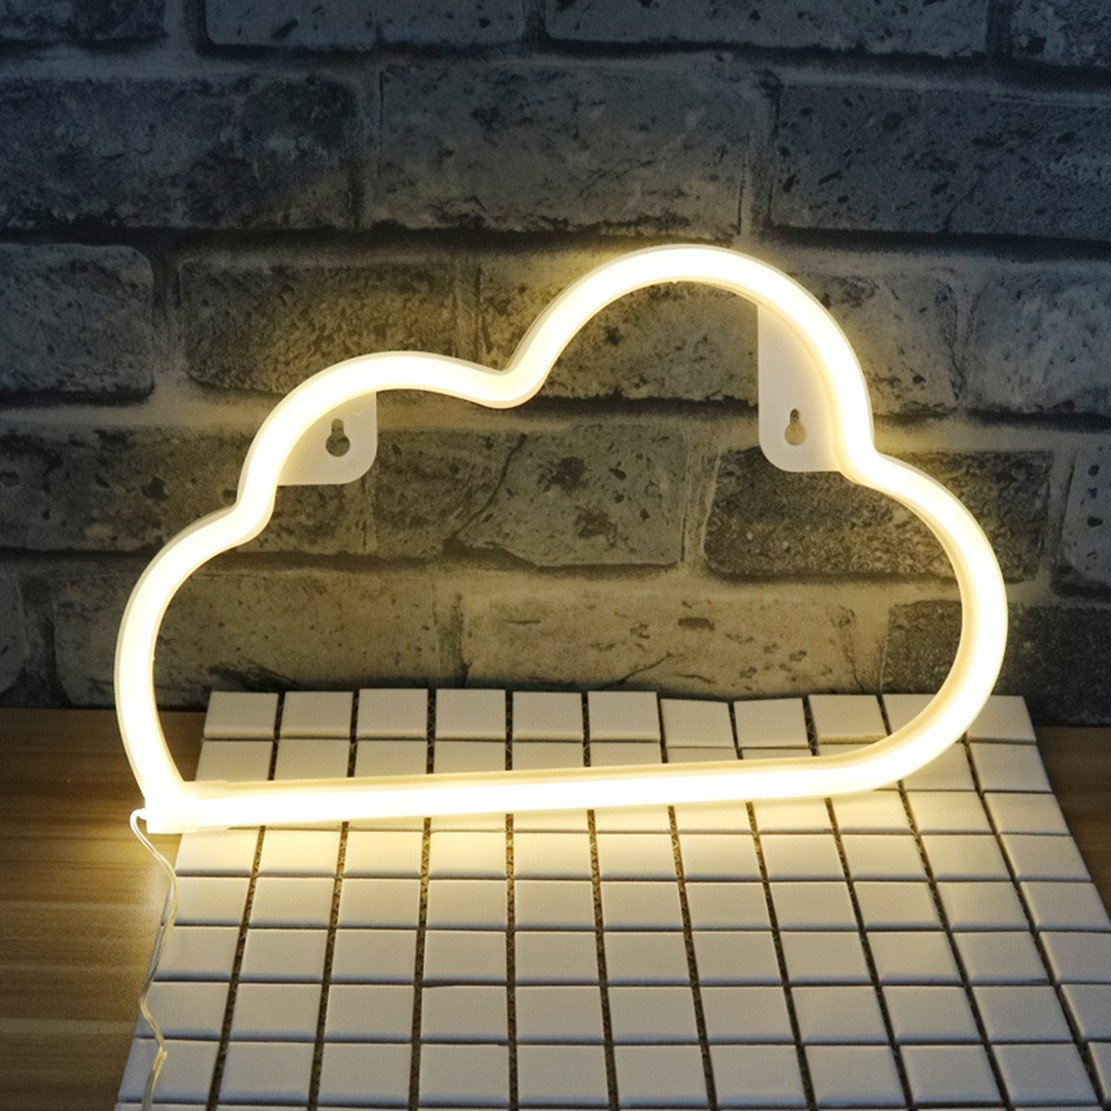 Cloud Neon Light Sign,Sky Theme Decoration Light,LED Cloud Shaped Room Decor Light,Wall Decor/Table Decor for Chistmas,Birthday Party,Kids Room, Living Room, Wedding Party Decor (Warm White)